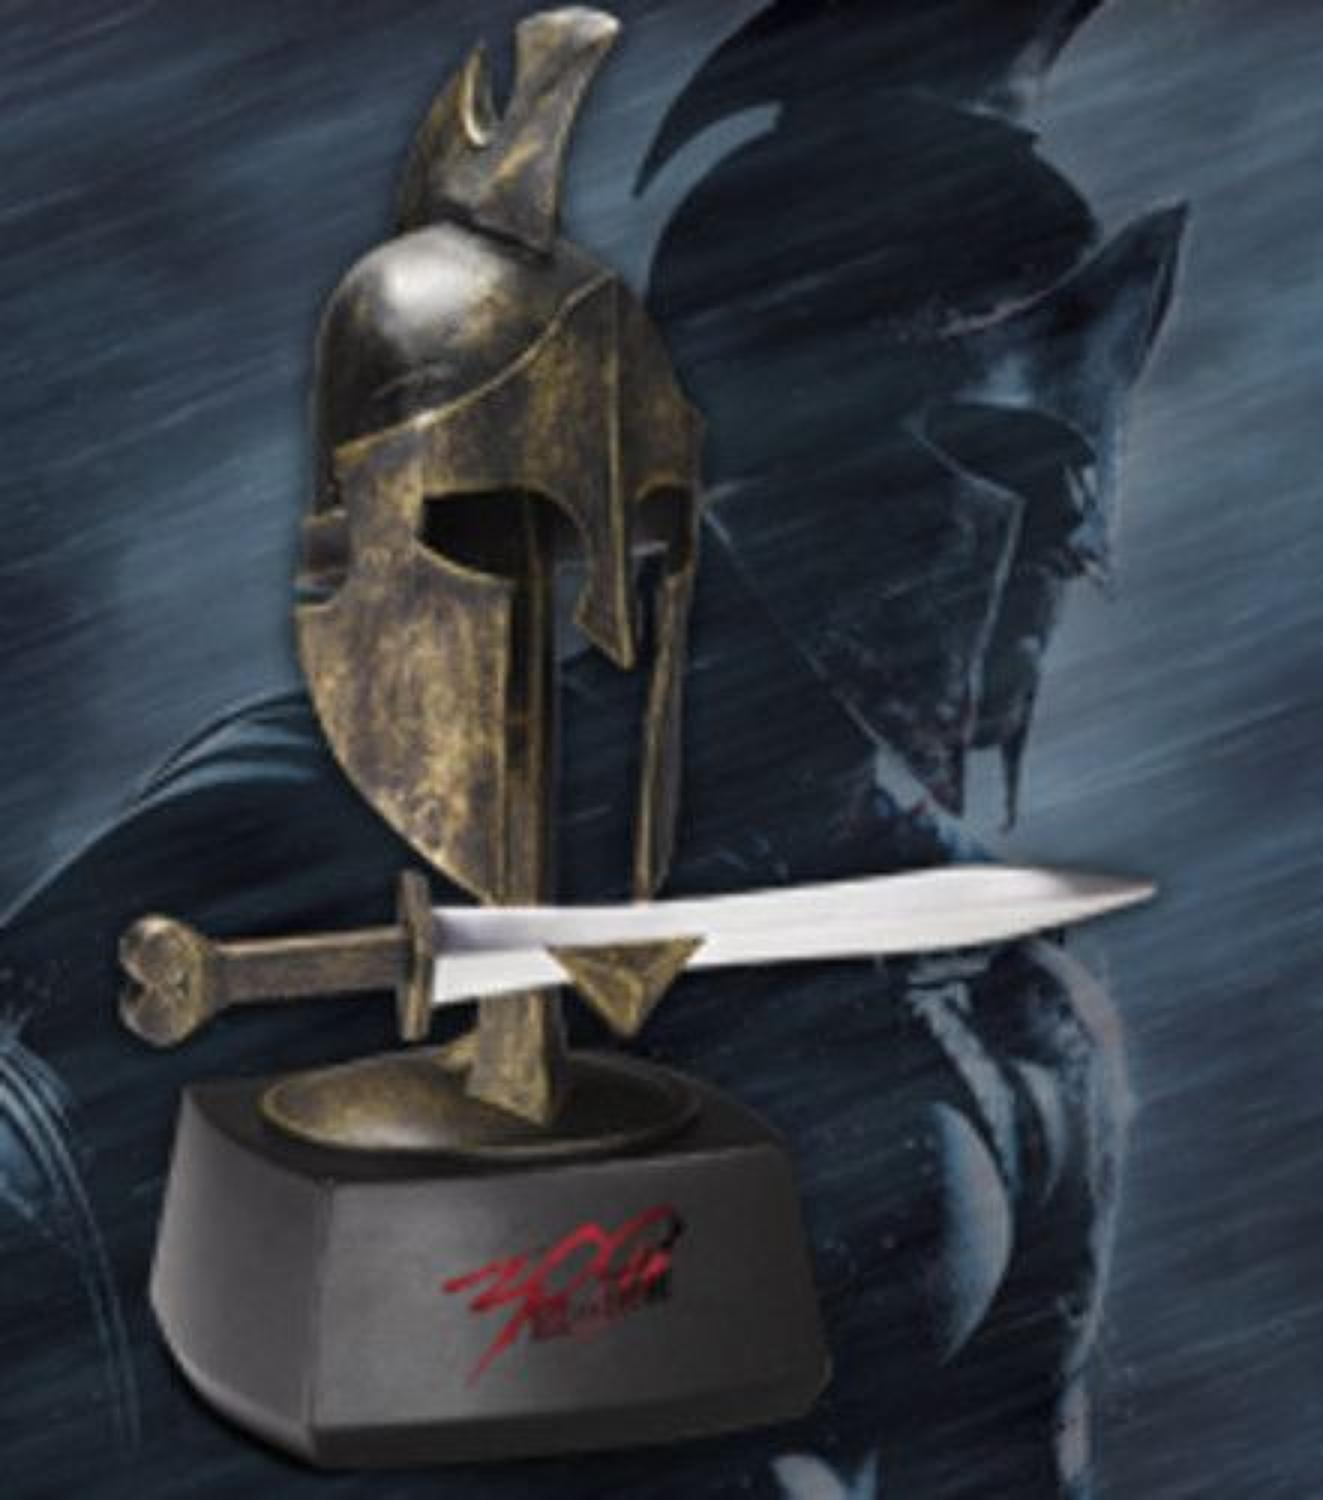 300 - Mini Themistocles Helmet and Gladius Replica